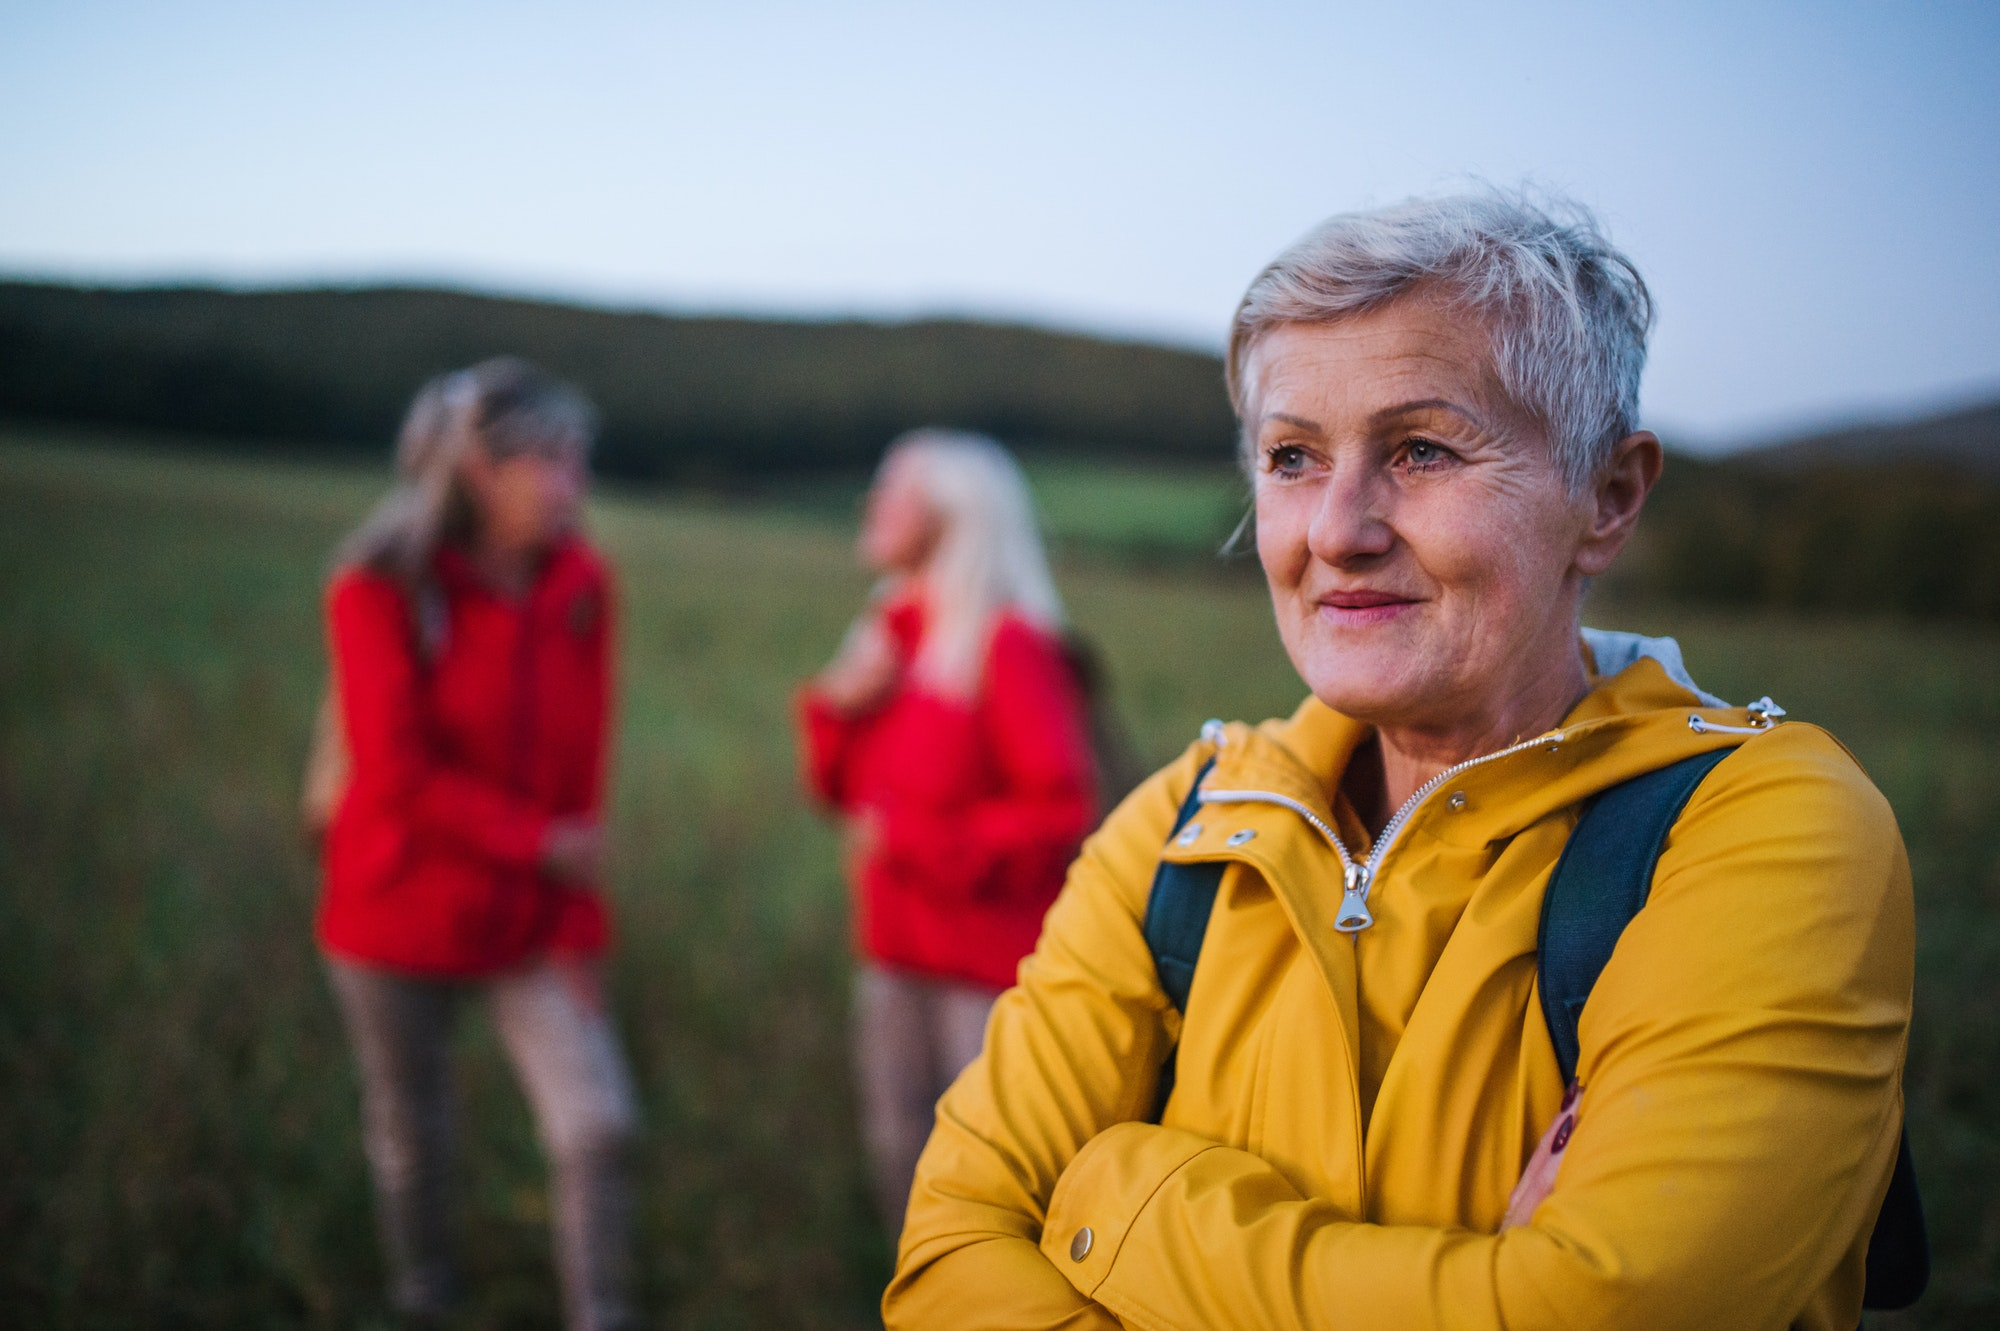 Senior women friends on walk outdoors in nature at dusk